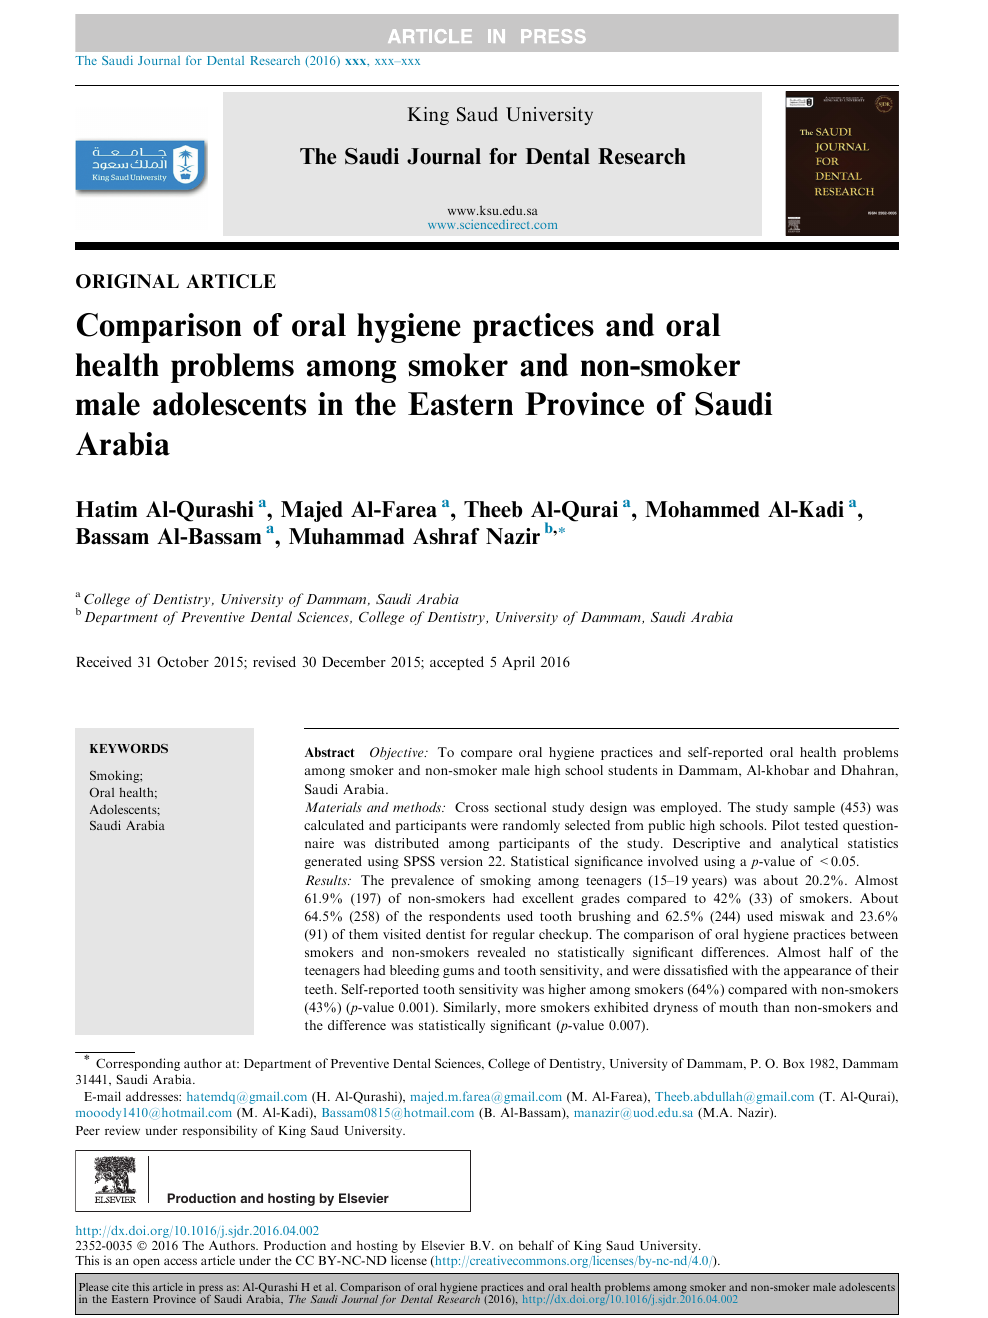 Comparison of oral hygiene practices and oral health problems among